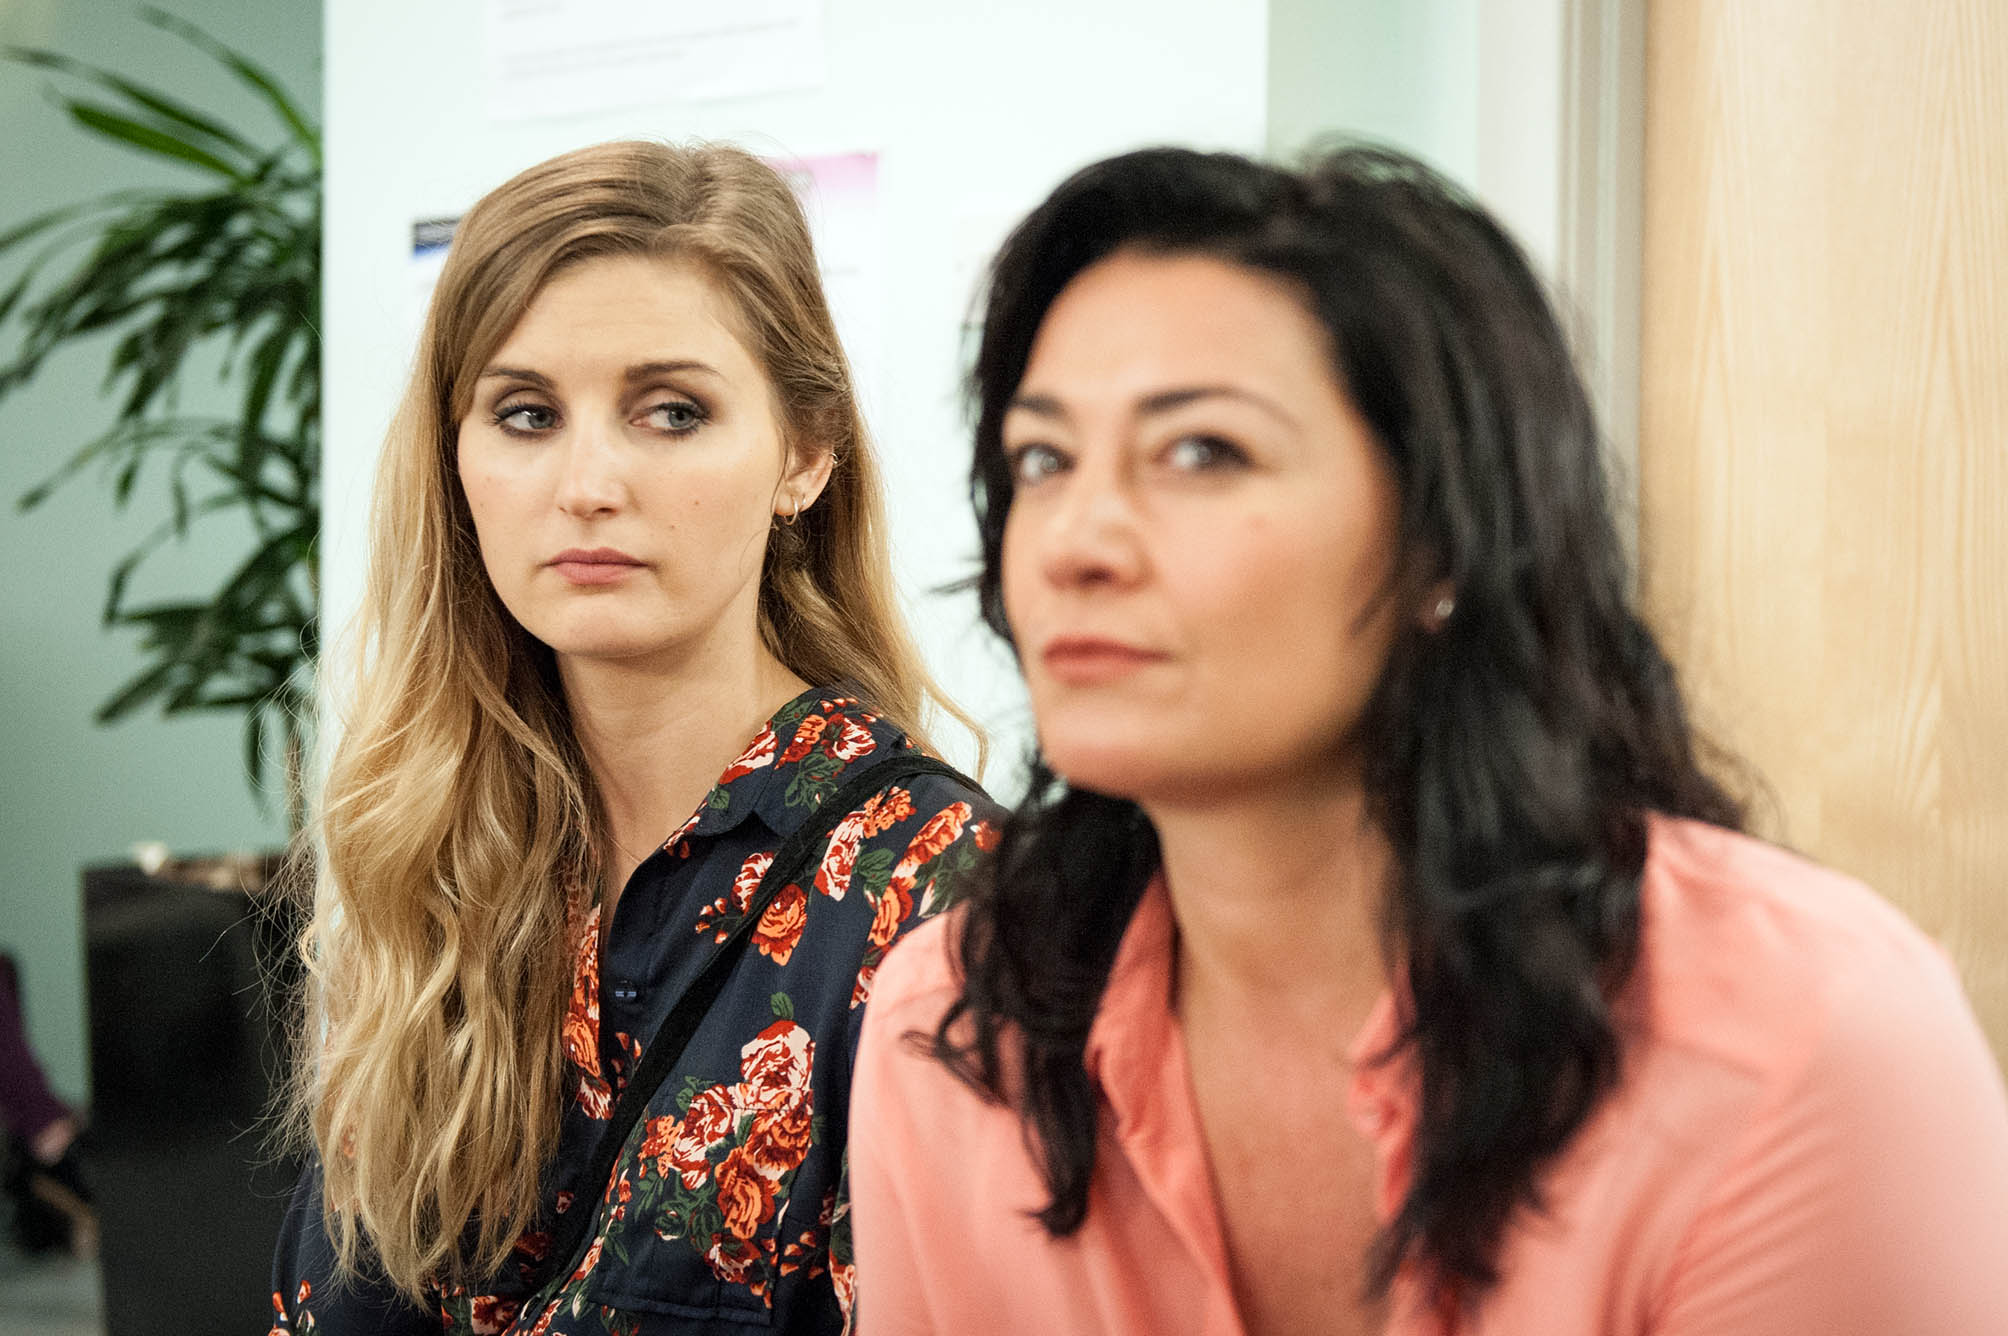 FROM ITV STRICT EMBARGO - NO USE BEFORE TUESDAY 16 AUGUST 2016                                                 Emmerdale - Ep 7599 Friday 26 August 2016 At the HIV clinic, Moira Dingle [NATALIE J ROBB] learns Holly Barton's [SOPHIE POWLES] missing her interview and tries to make her go. Will Moira be in the clear? And will Holly make her interview or will her past come back to haunt her?  Picture contact: david.crook@itv.com on 0161 952 6214 Photographer - Andrew Boyce This photograph is (C) ITV Plc and can only be reproduced for editorial purposes directly in connection with the programme or event mentioned above, or ITV plc. Once made available by ITV plc Picture Desk, this photograph can be reproduced once only up until the transmission [TX] date and no reproduction fee will be charged. Any subsequent usage may incur a fee. This photograph must not be manipulated [excluding basic cropping] in a manner which alters the visual appearance of the person photographed deemed detrimental or inappropriate by ITV plc Picture Desk. This photograph must not be syndicated to any other company, publication or website, or permanently archived, without the express written permission of ITV Plc Picture Desk. Full Terms and conditions are available on the website www.itvpictures.com